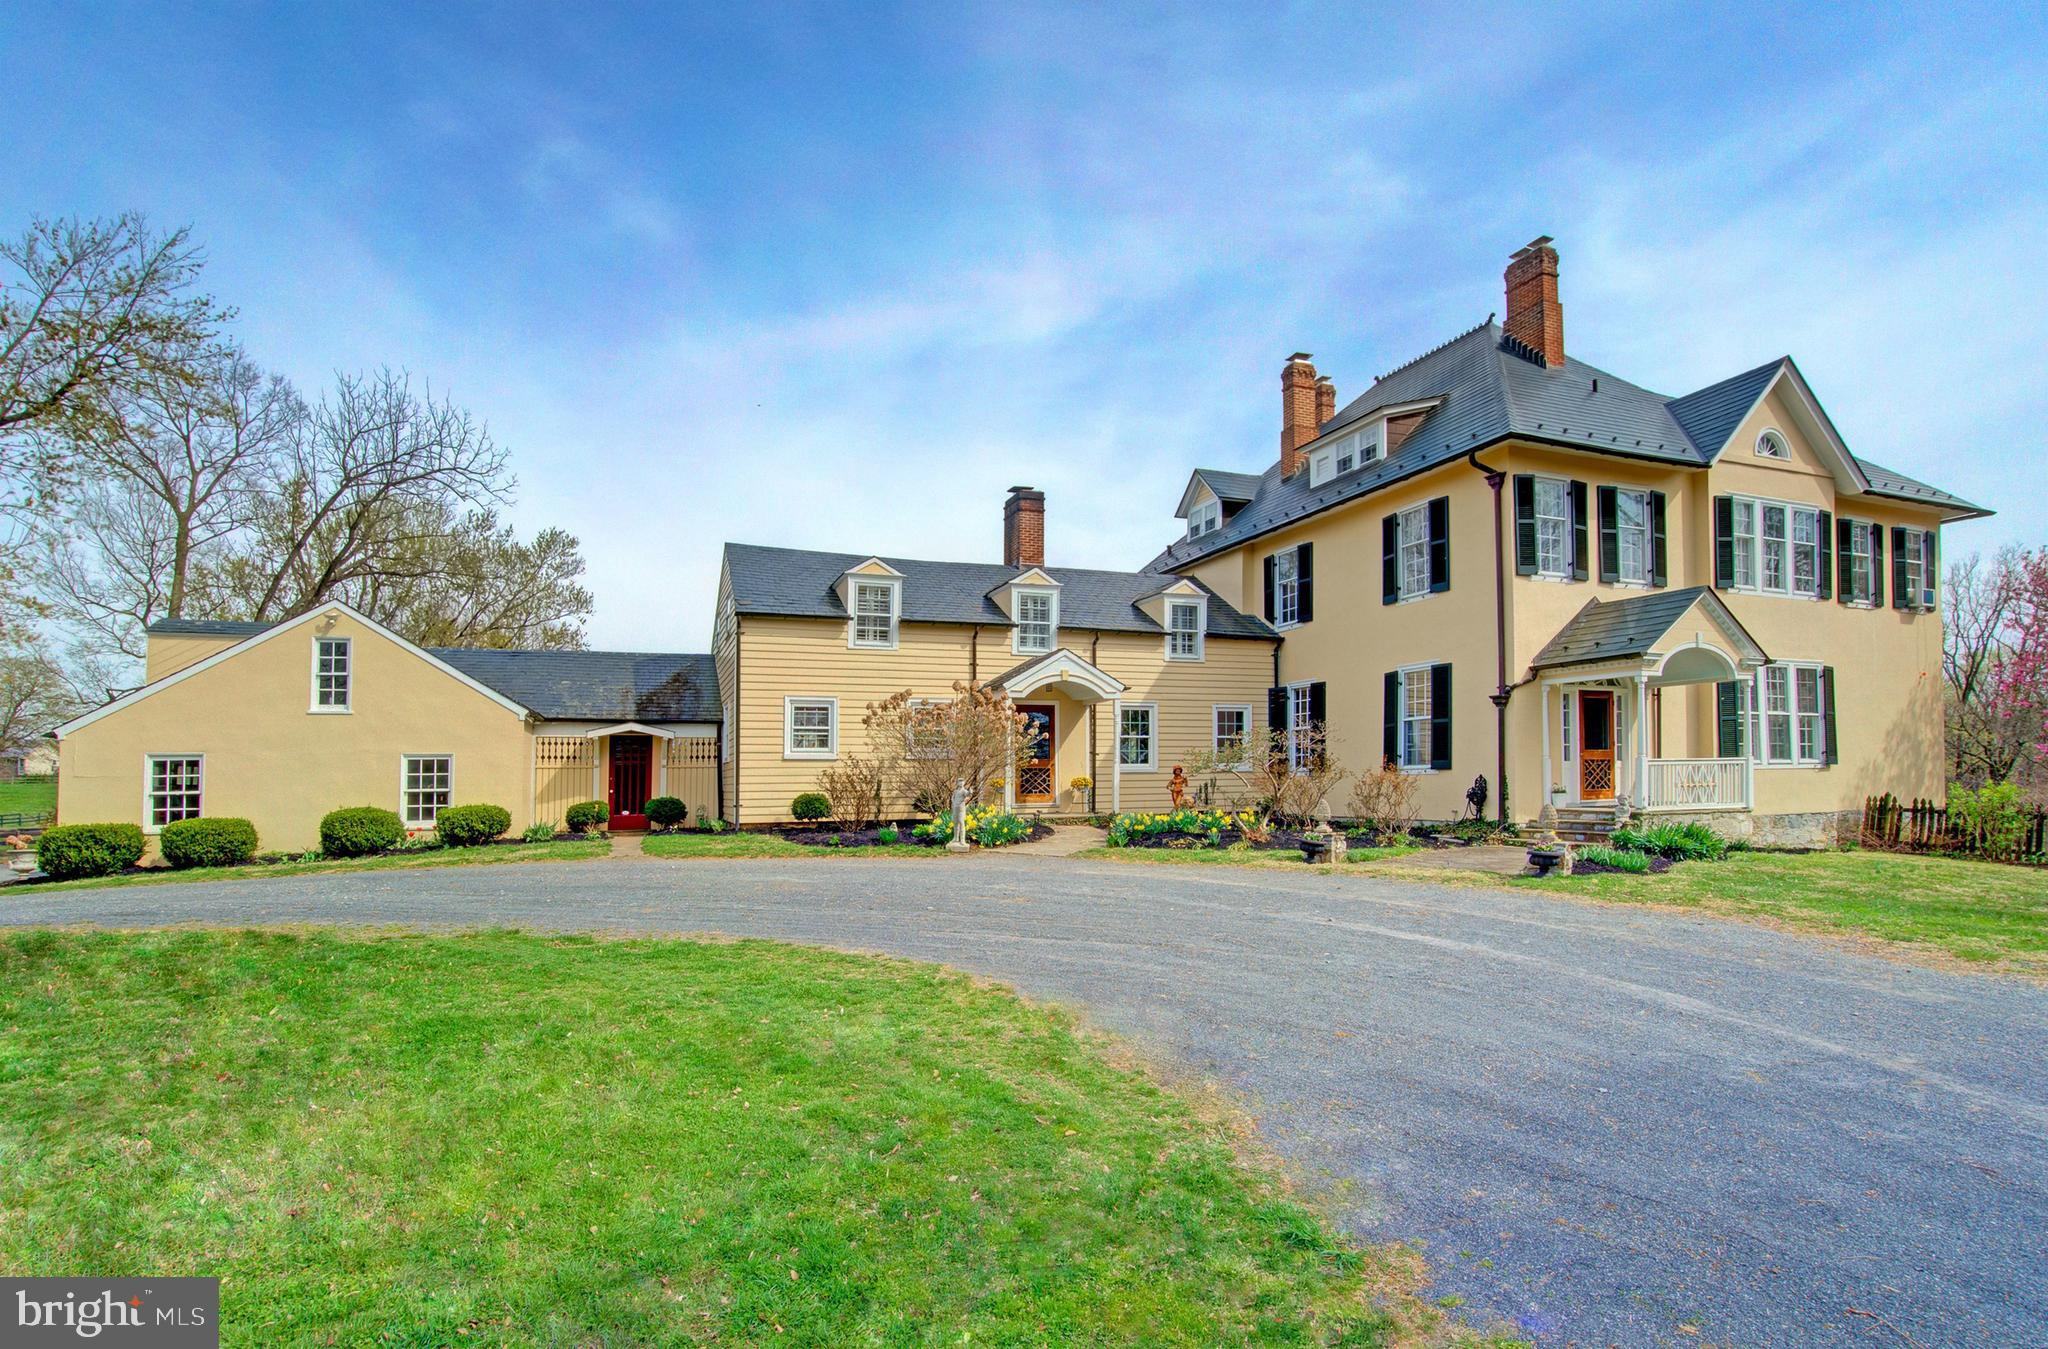 388 MOUNT AIRY FARM LANE, BOYCE, VA 22620